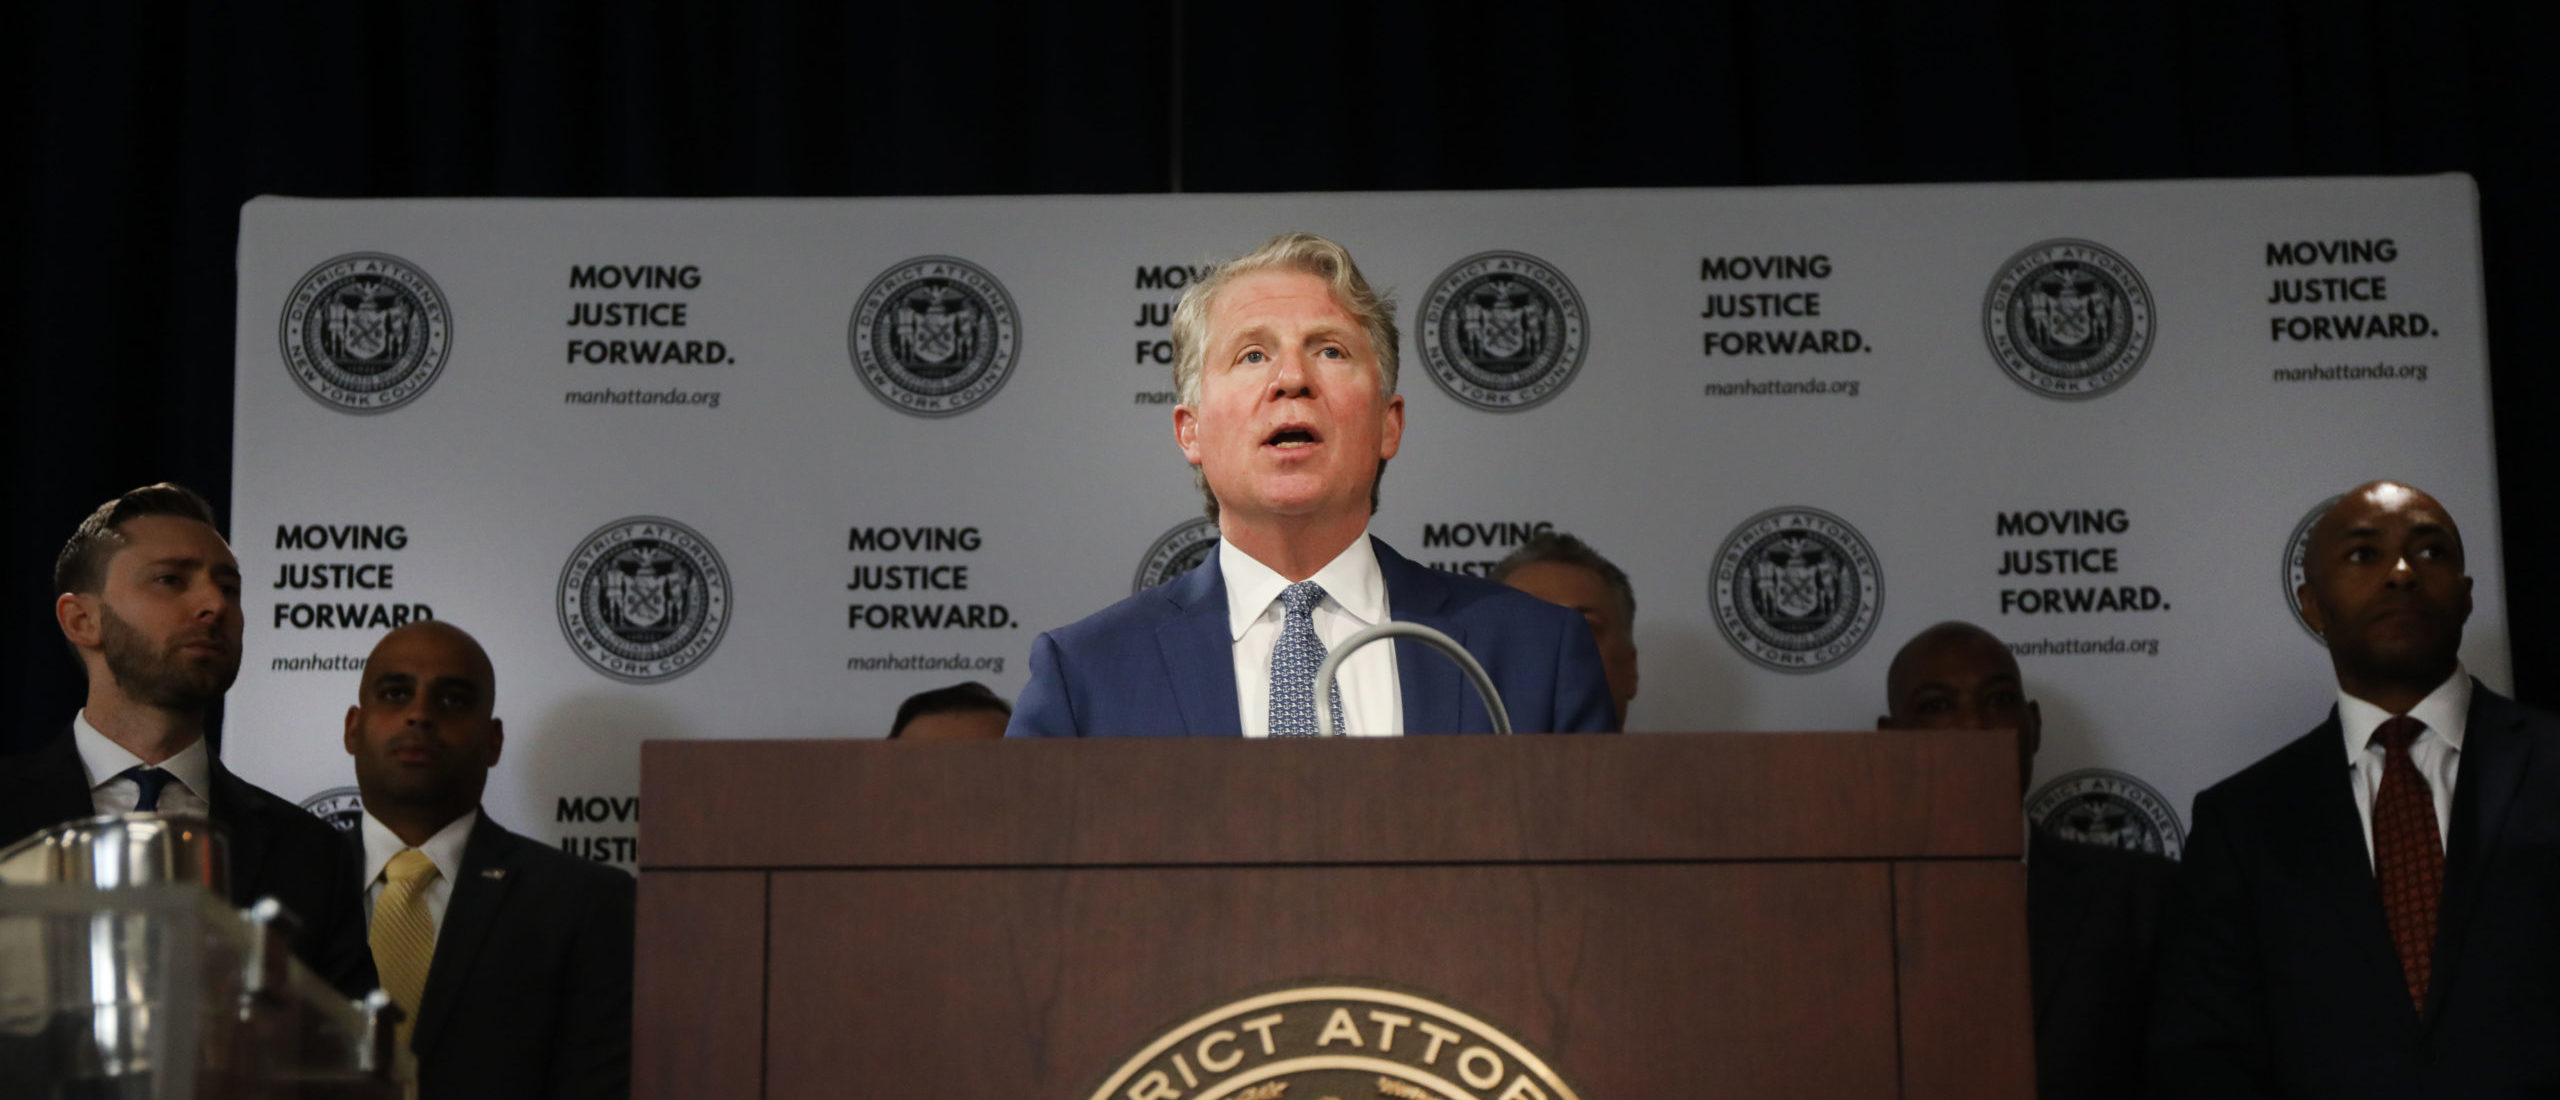 Surrounded by pictures and items seized, Manhattan District Attorney Cyrus Vance Jr. announces the take down of a crime ring run on the dark web on April 16, 2019 in New York City. (Photo by Spencer Platt/Getty Images)